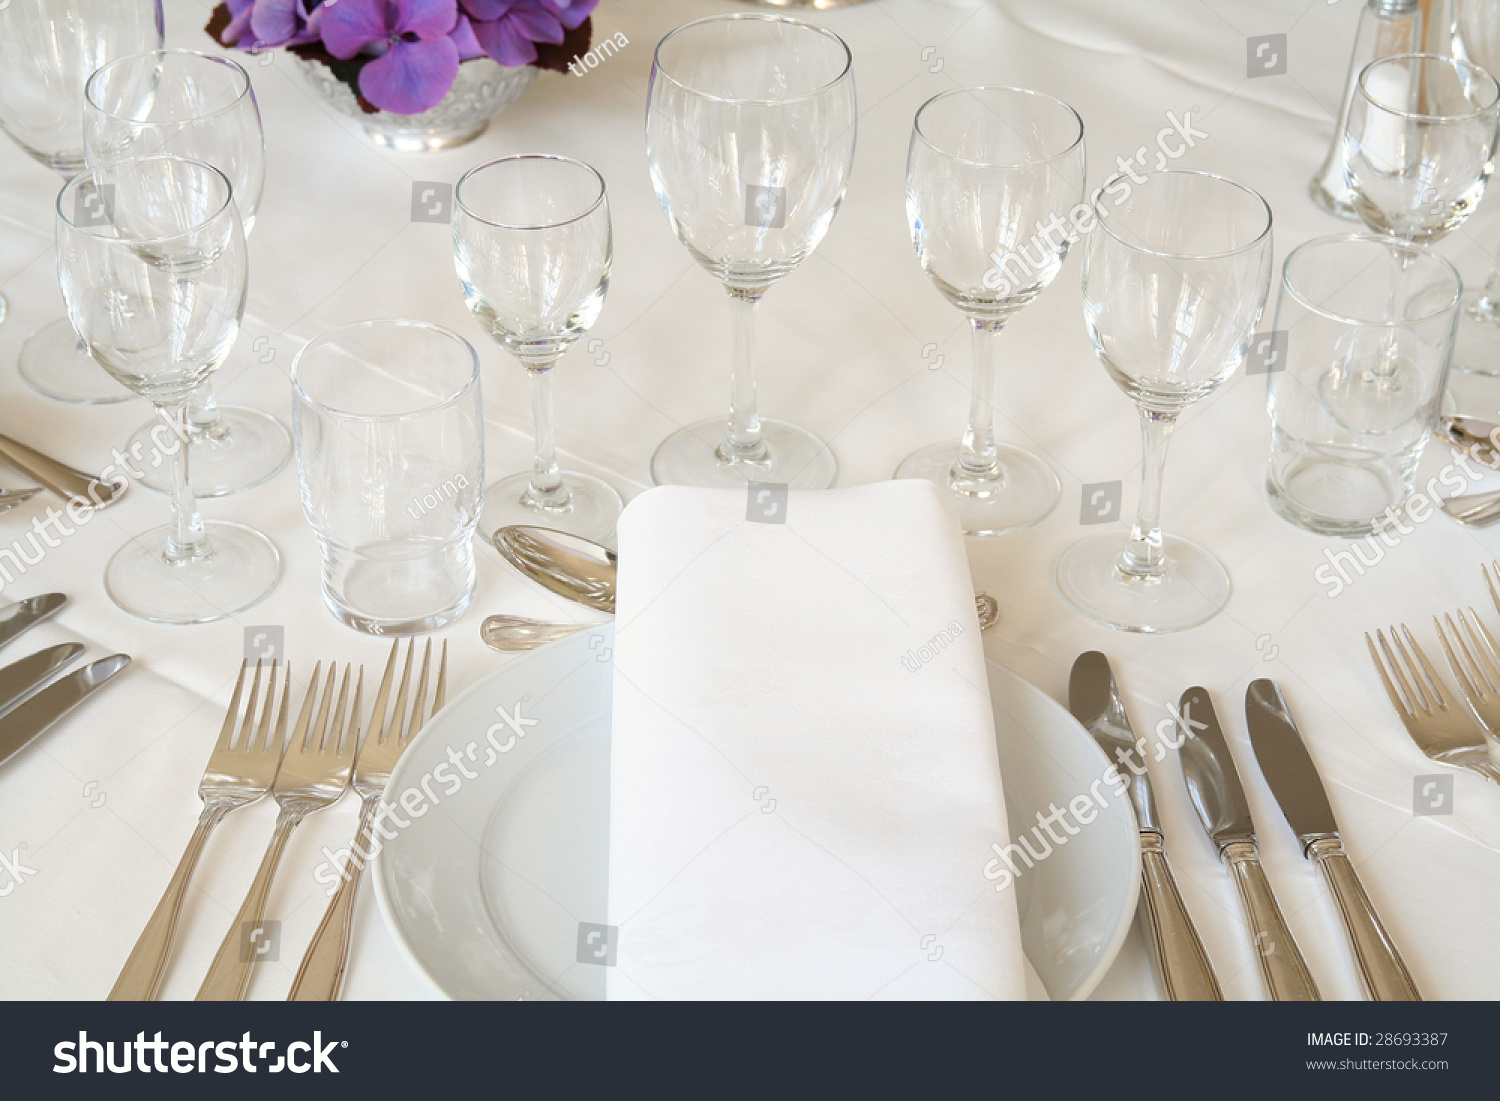 Fancy restaurant table setting - Table Setting For Fine Dining Or Party Cutlery And Plate In Restaurant Set Up For